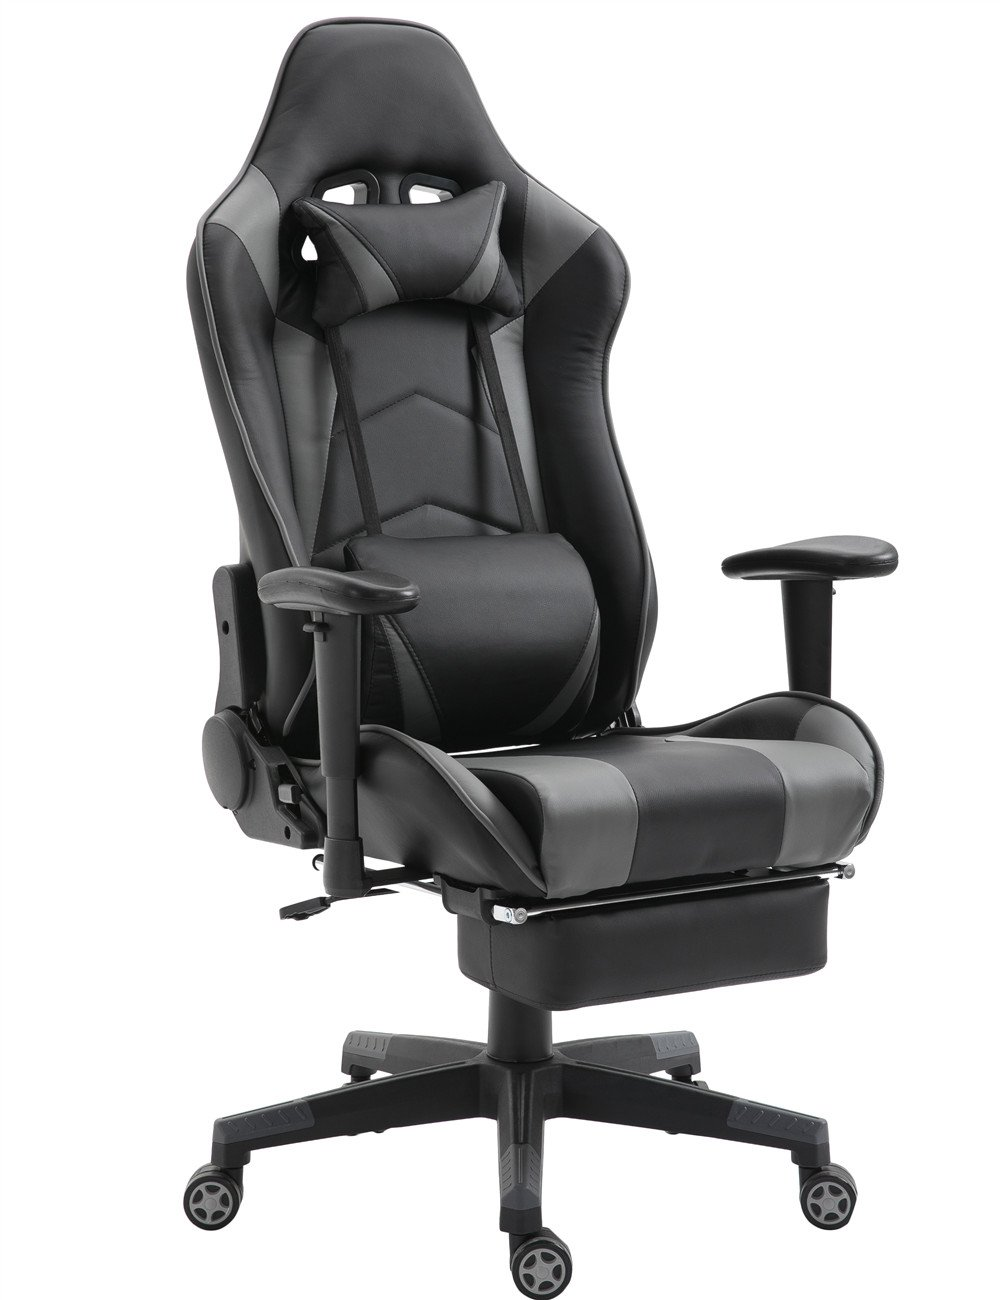 Gaming Chair High Back Ergonomic Racing Chair with Footrest Adjustable Height Swivel Office Chair with Headrest Lumbar Support (Black) SHIONOOM